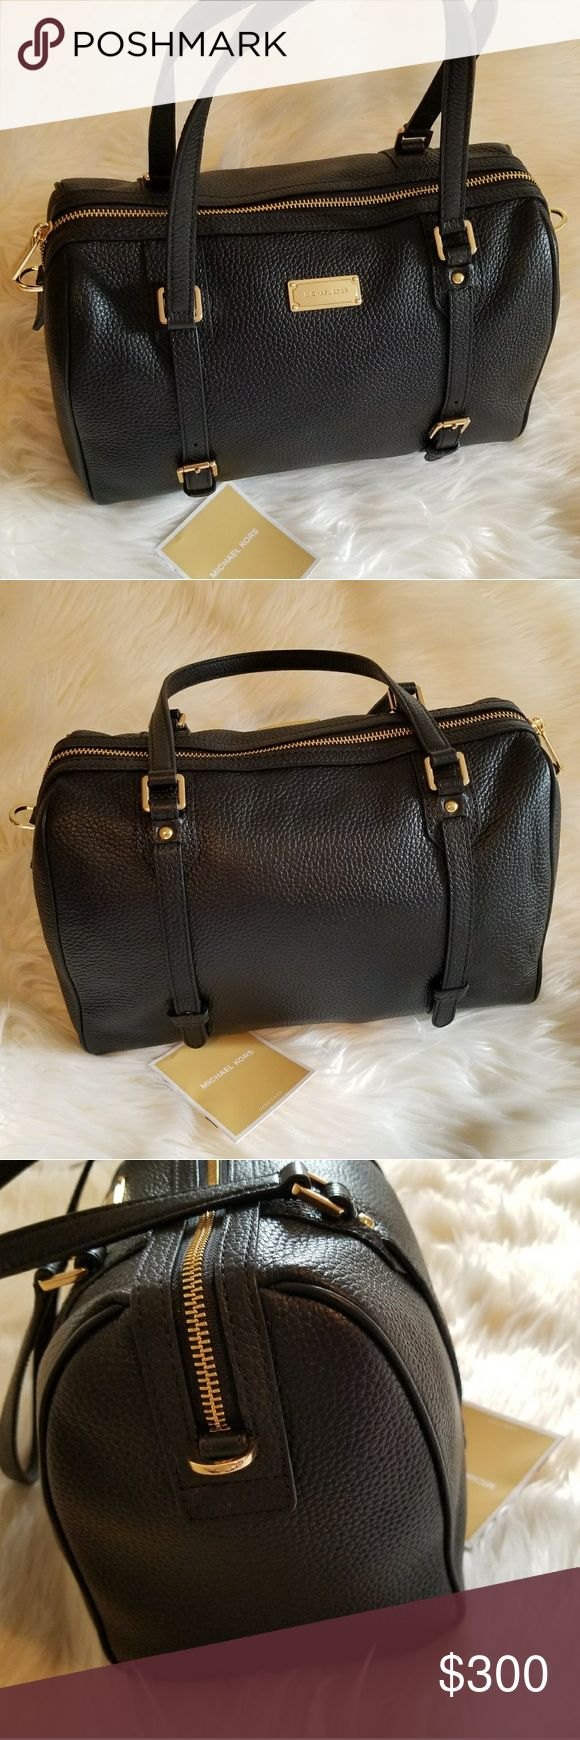 """NWT*Michael Kors Large Bedford* NWT* Black Michael Kors Large Bedford Satchel * Gorgeous Black Pebbled Leather w/Gold Tone Hardware & Signature plate on Front* Beautiful Detailing, Great Bag for Day or night*Approx. Dimensions : 12"""" (W) x 8"""" (H) x 6.5"""" (D)*  Reasonable offers accepted* Bundle & Save* Michael Kors Bags"""